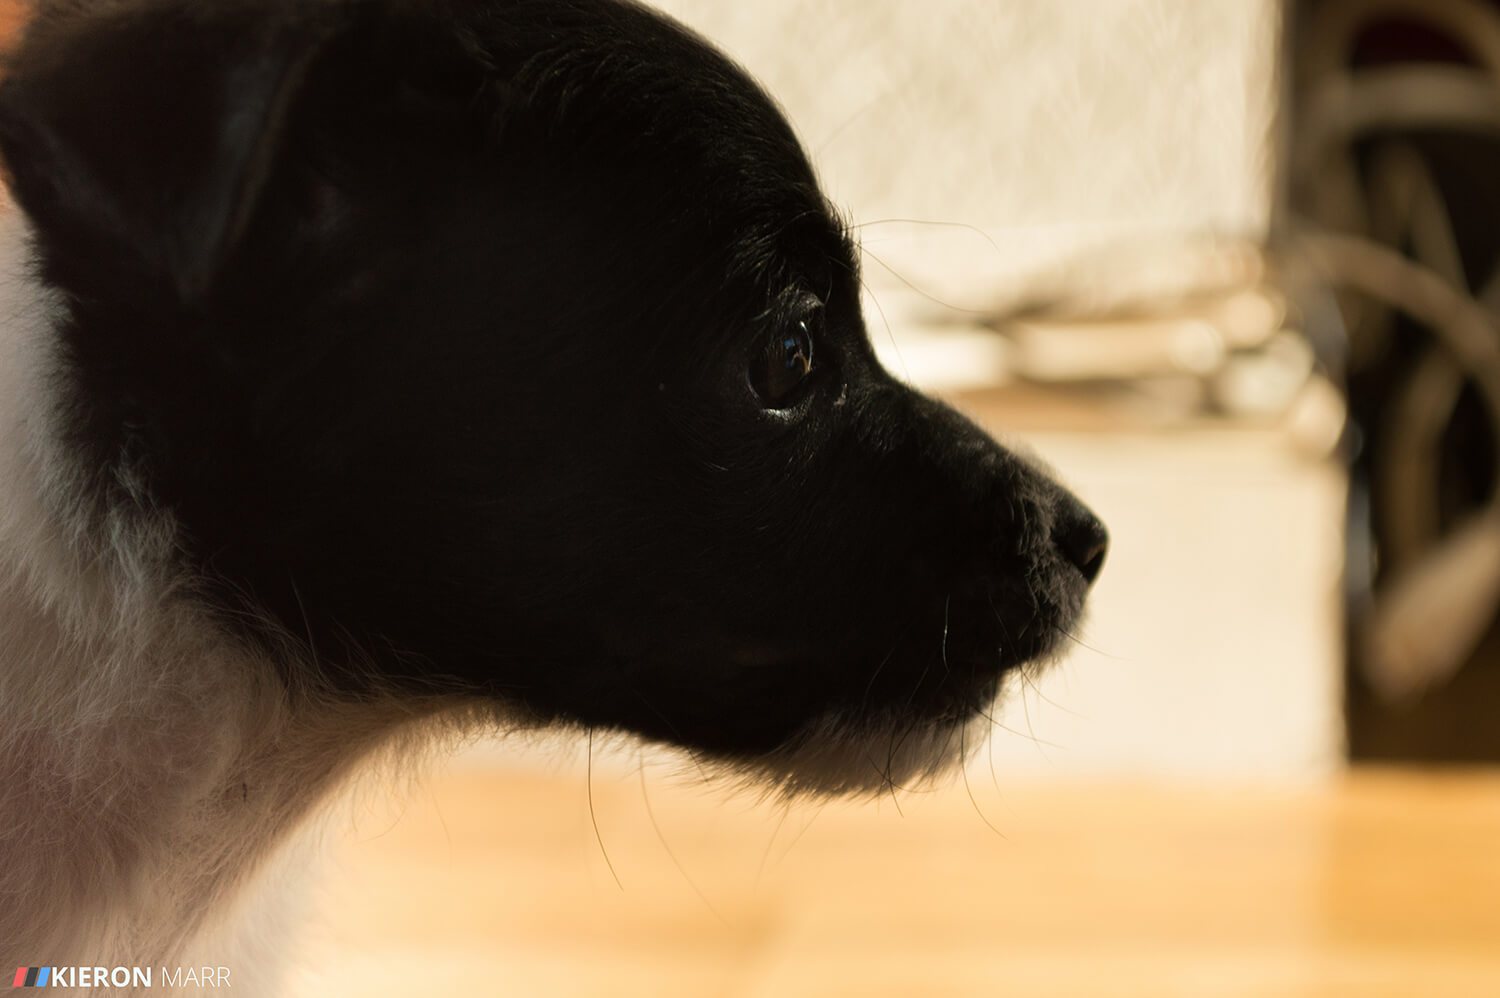 Stan the Jack Russell as a puppy